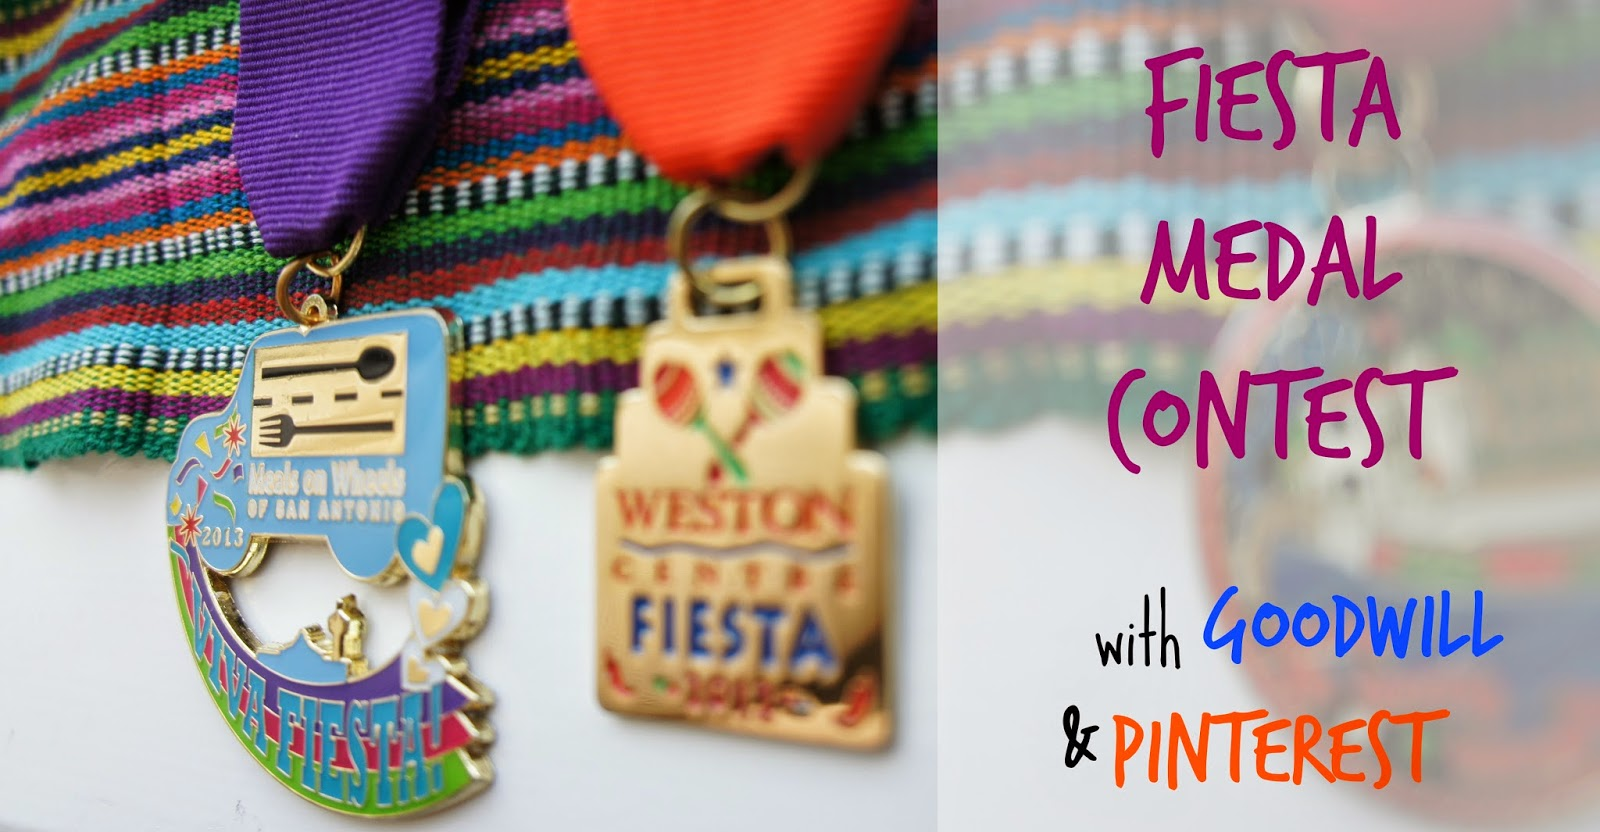 Fiesta Medal Contest with Goodwill and Pinterest